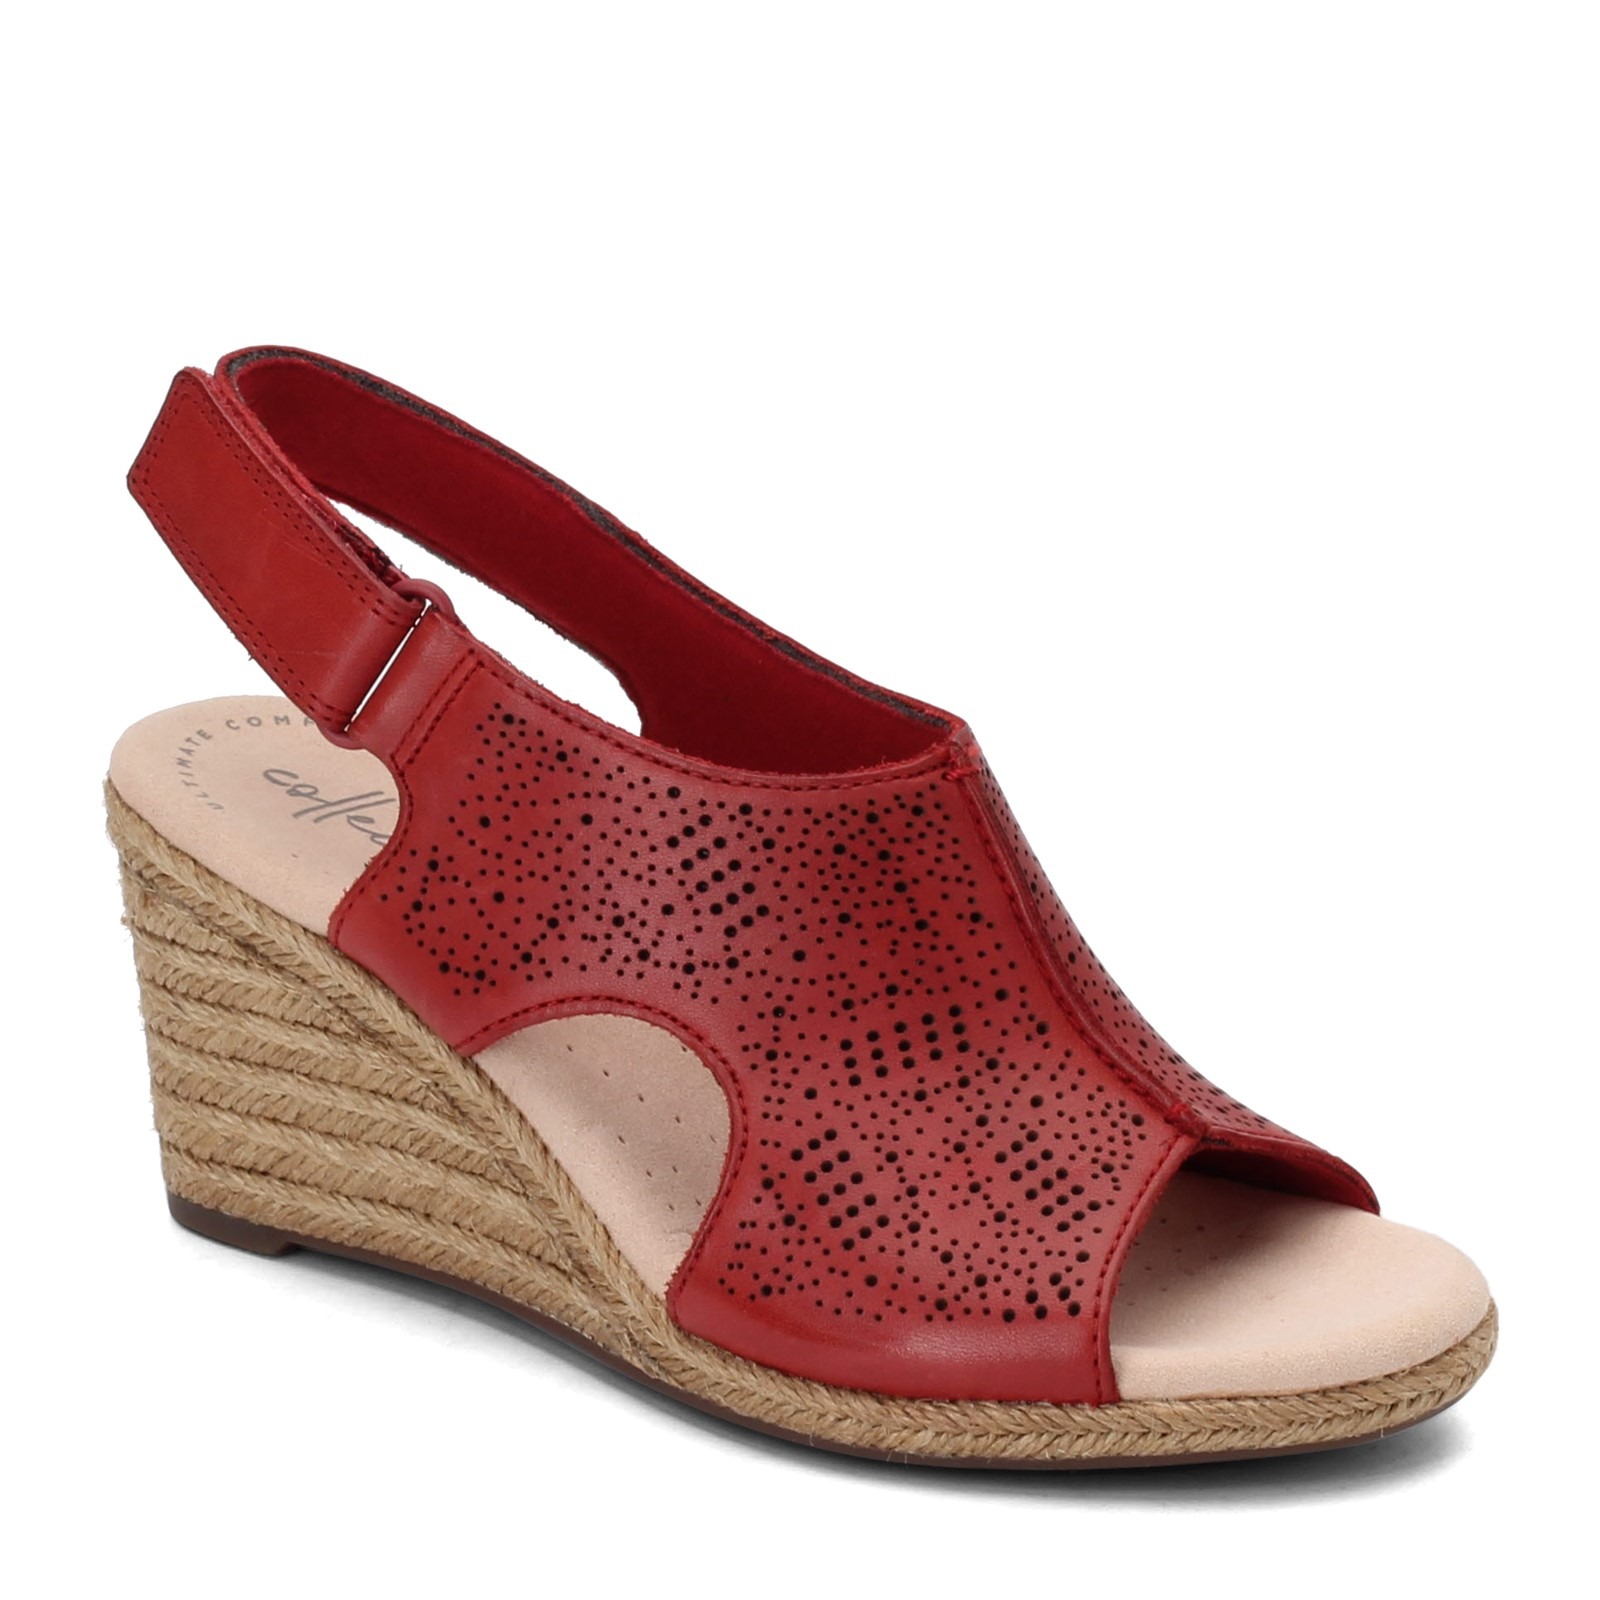 Women's Clarks, Lafley Rosen Wedge Sandals